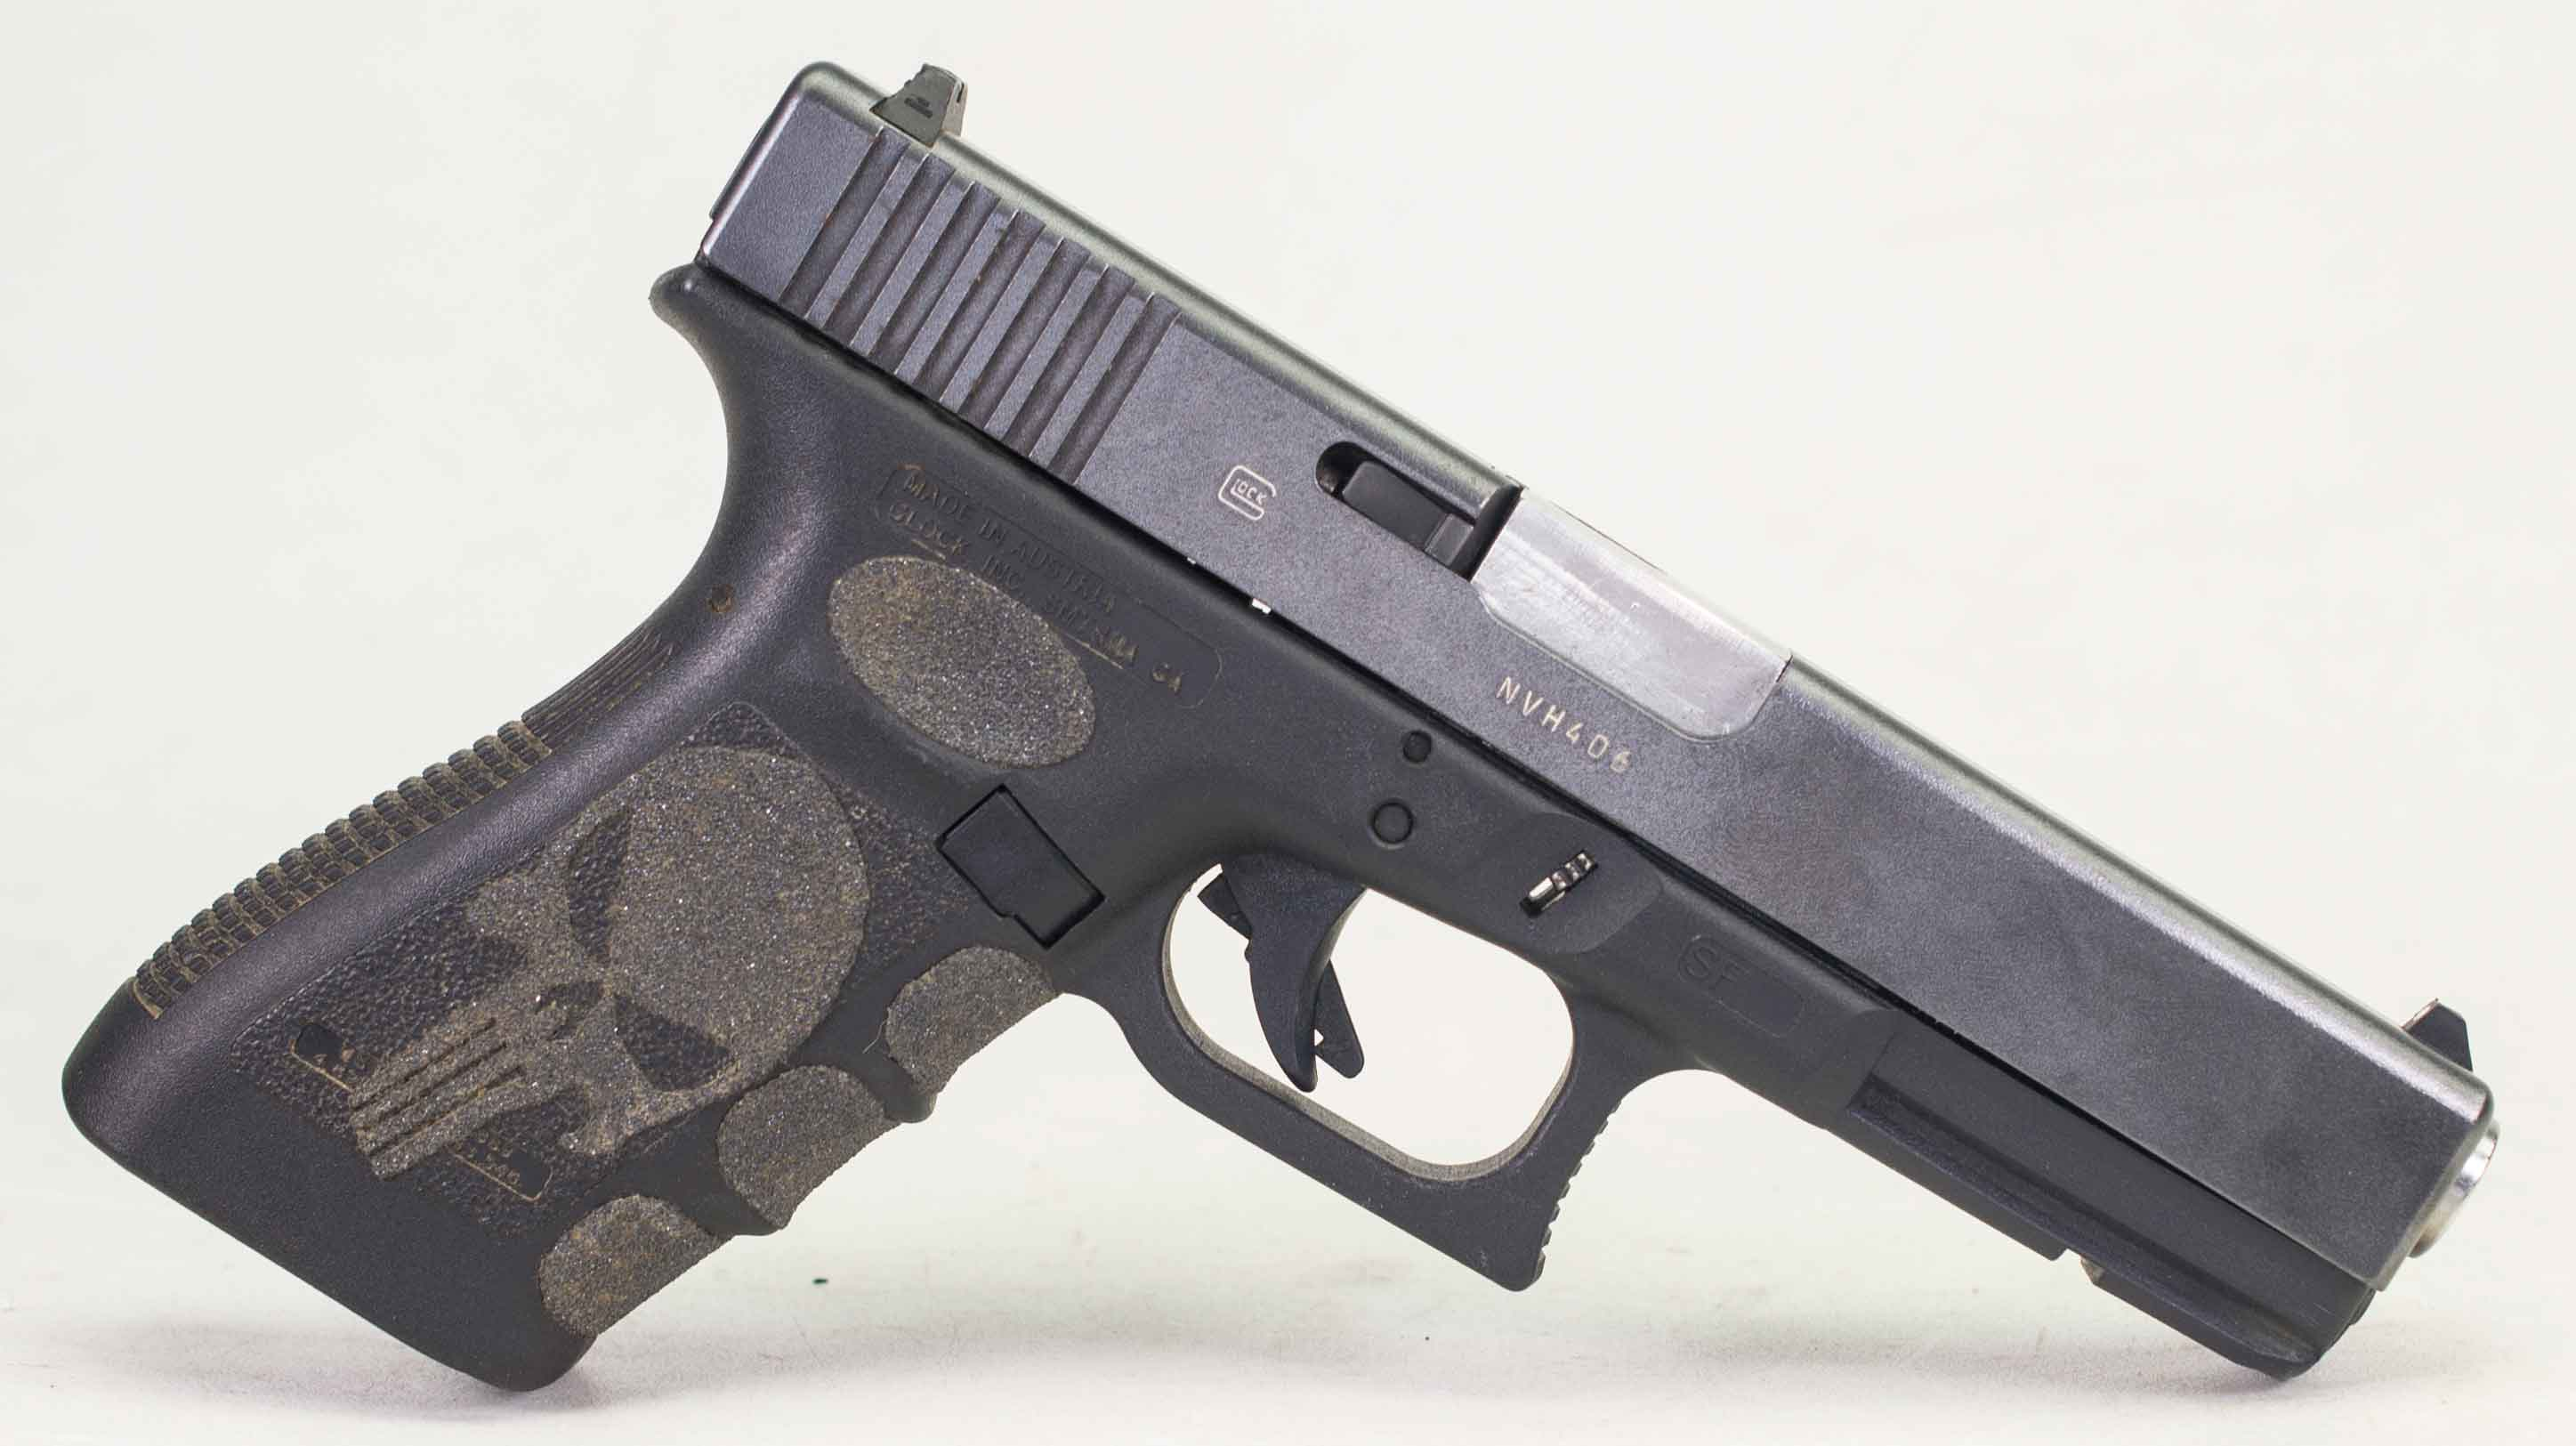 GLOCK 20 (Auction ID: 8847523, End Time : Jul  24, 2017 22